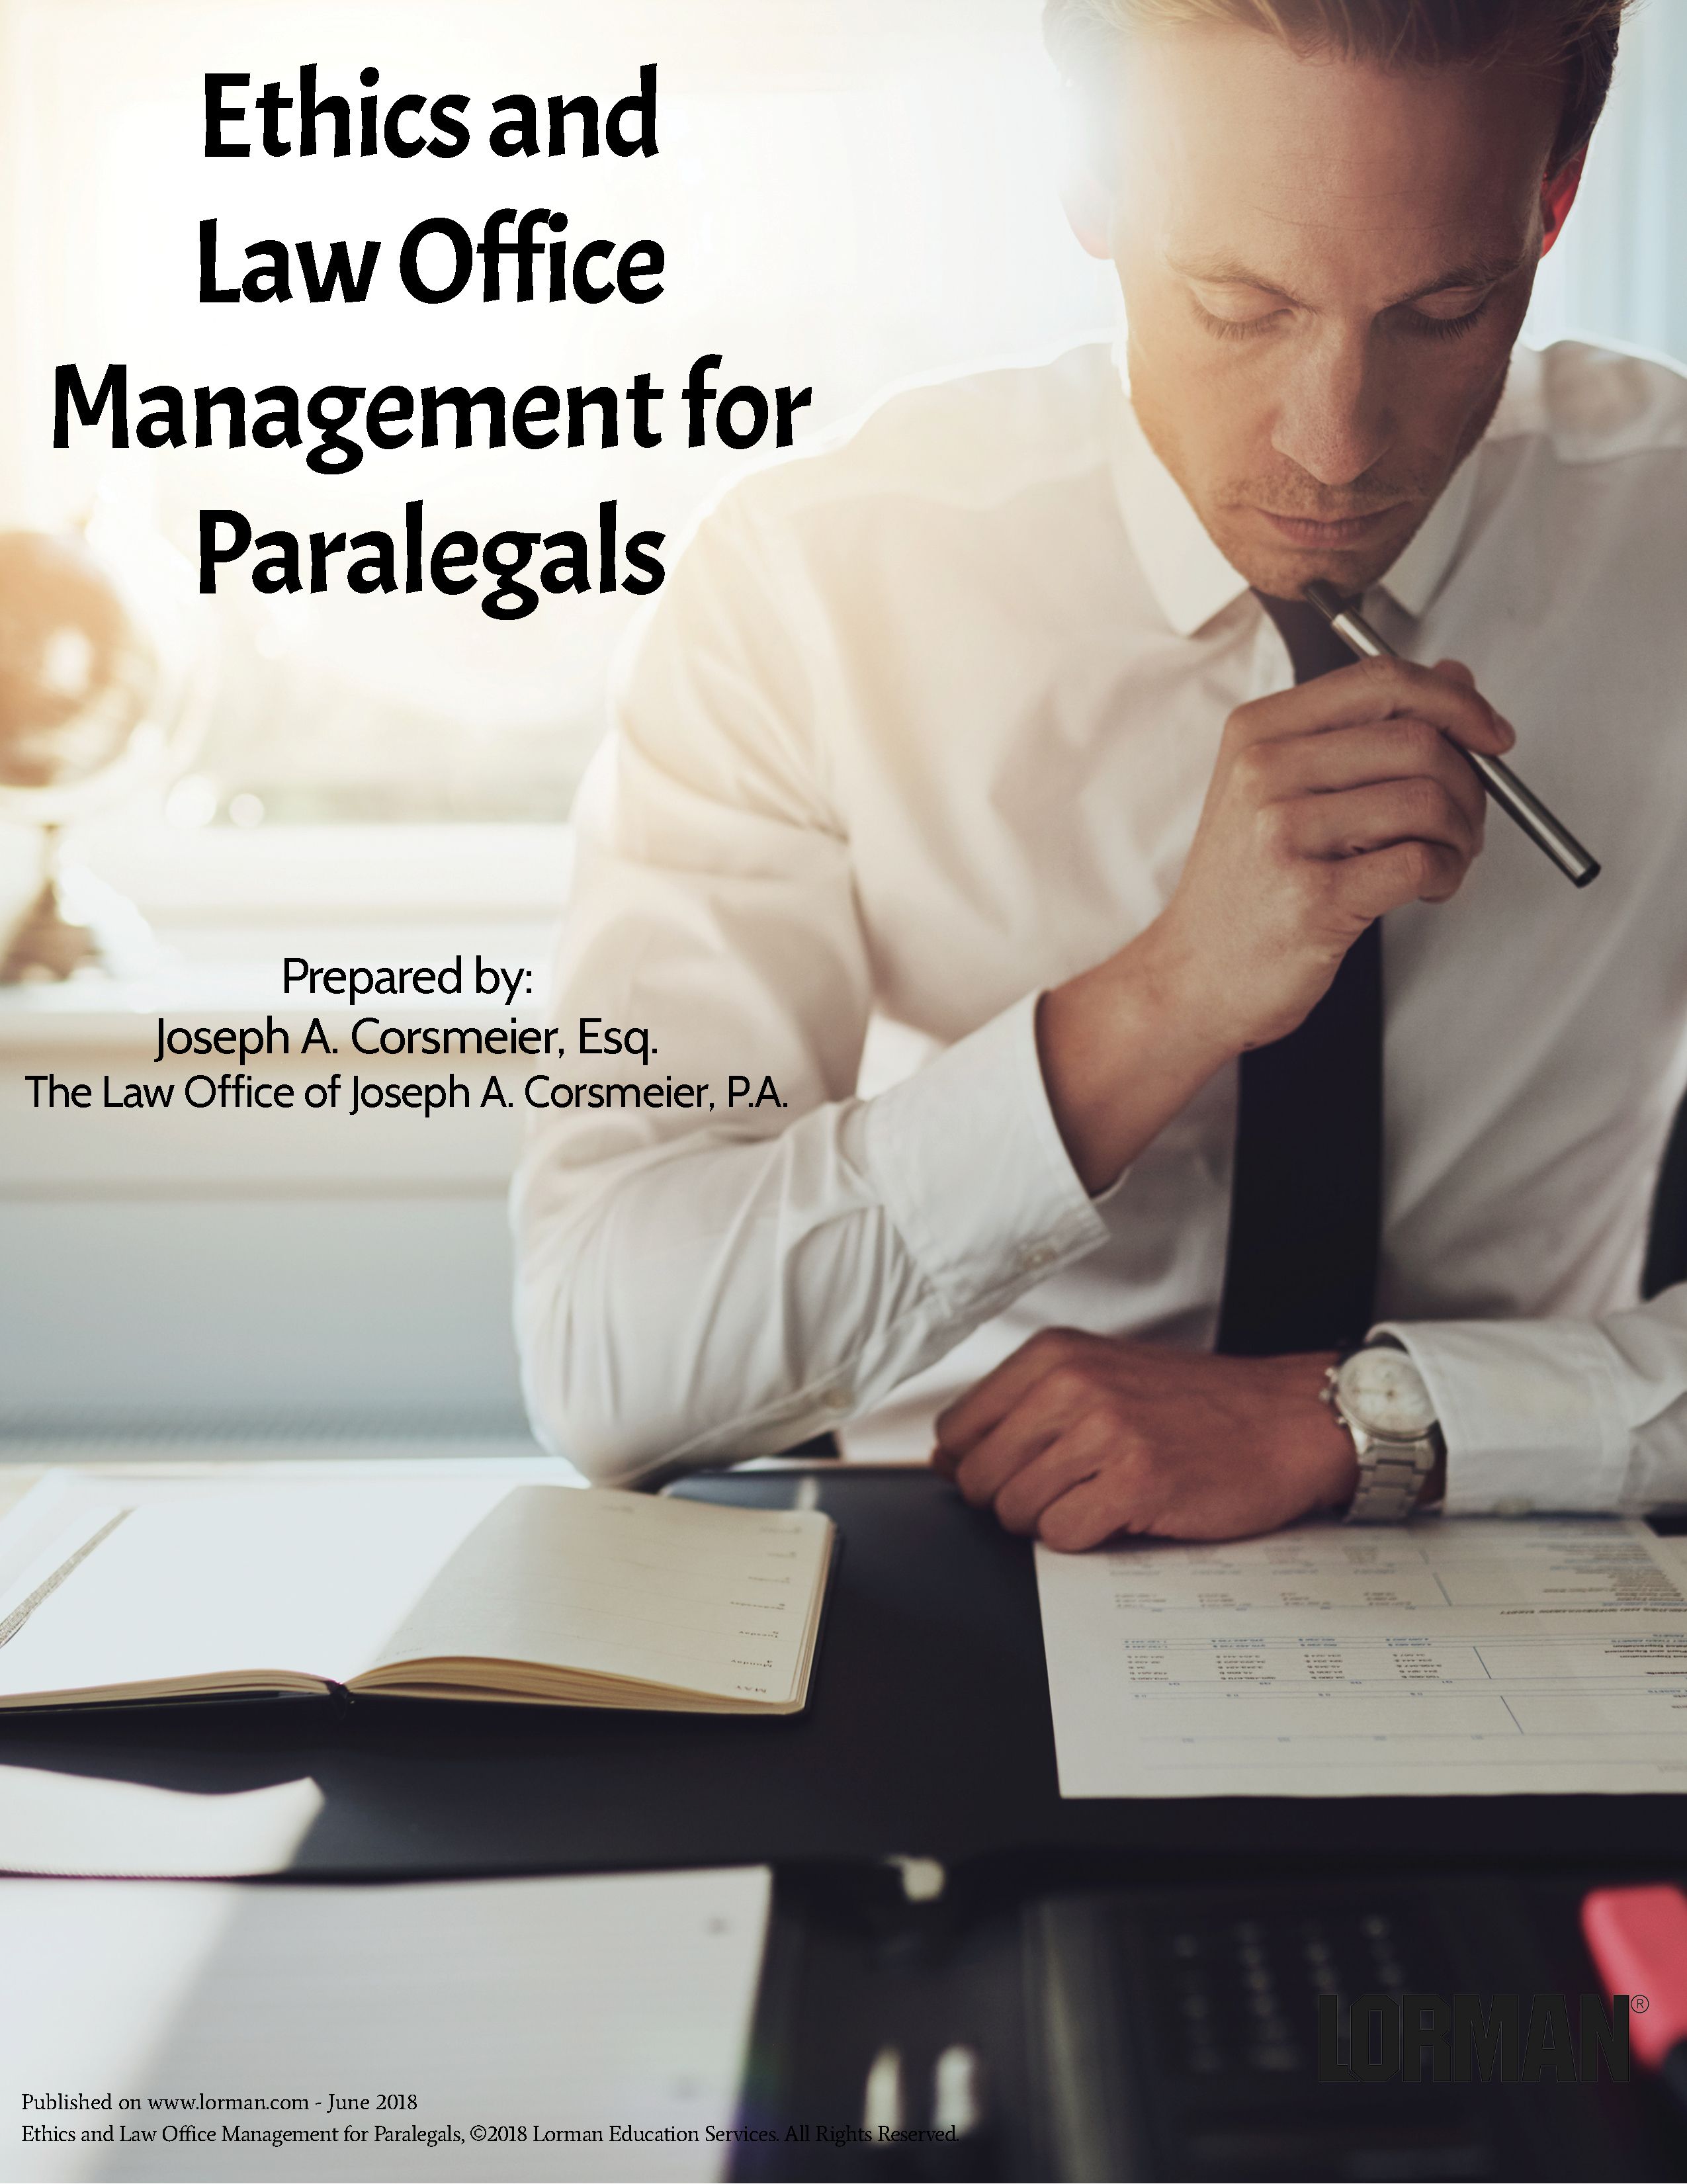 Ethics and Law Office Management for Paralegals